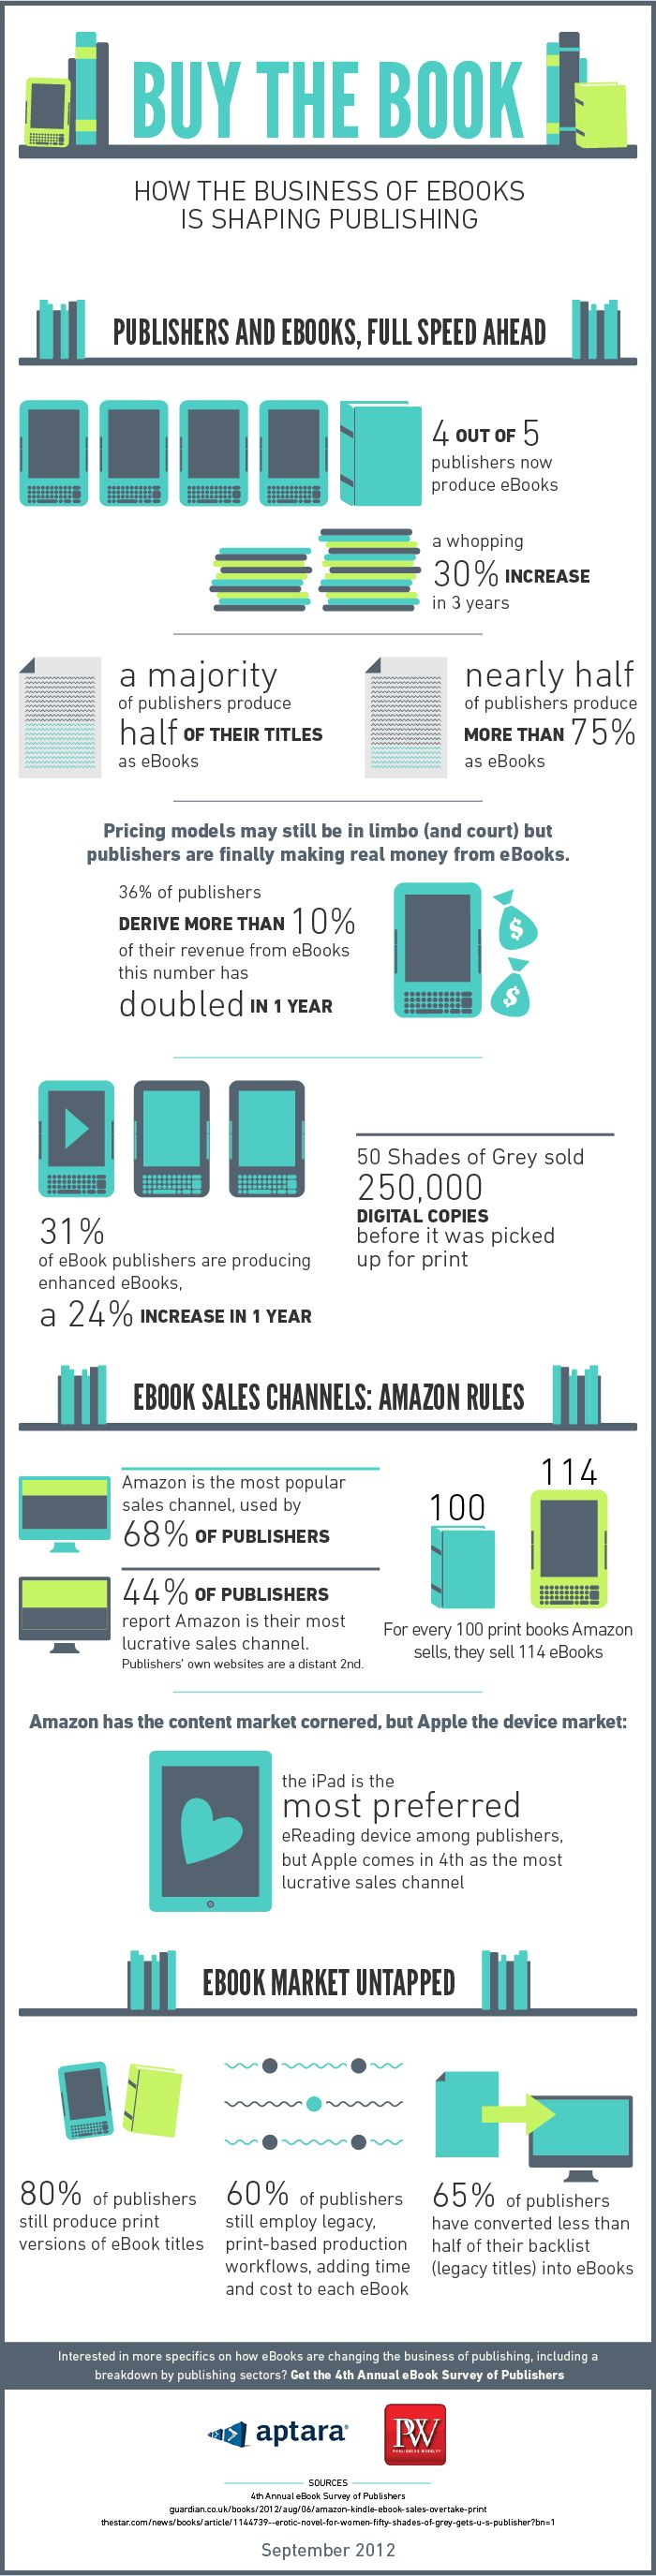 4 Out Of 5 Publishers Now Produce Ebooks  Publisher Income From Ebooks  Has Doubled